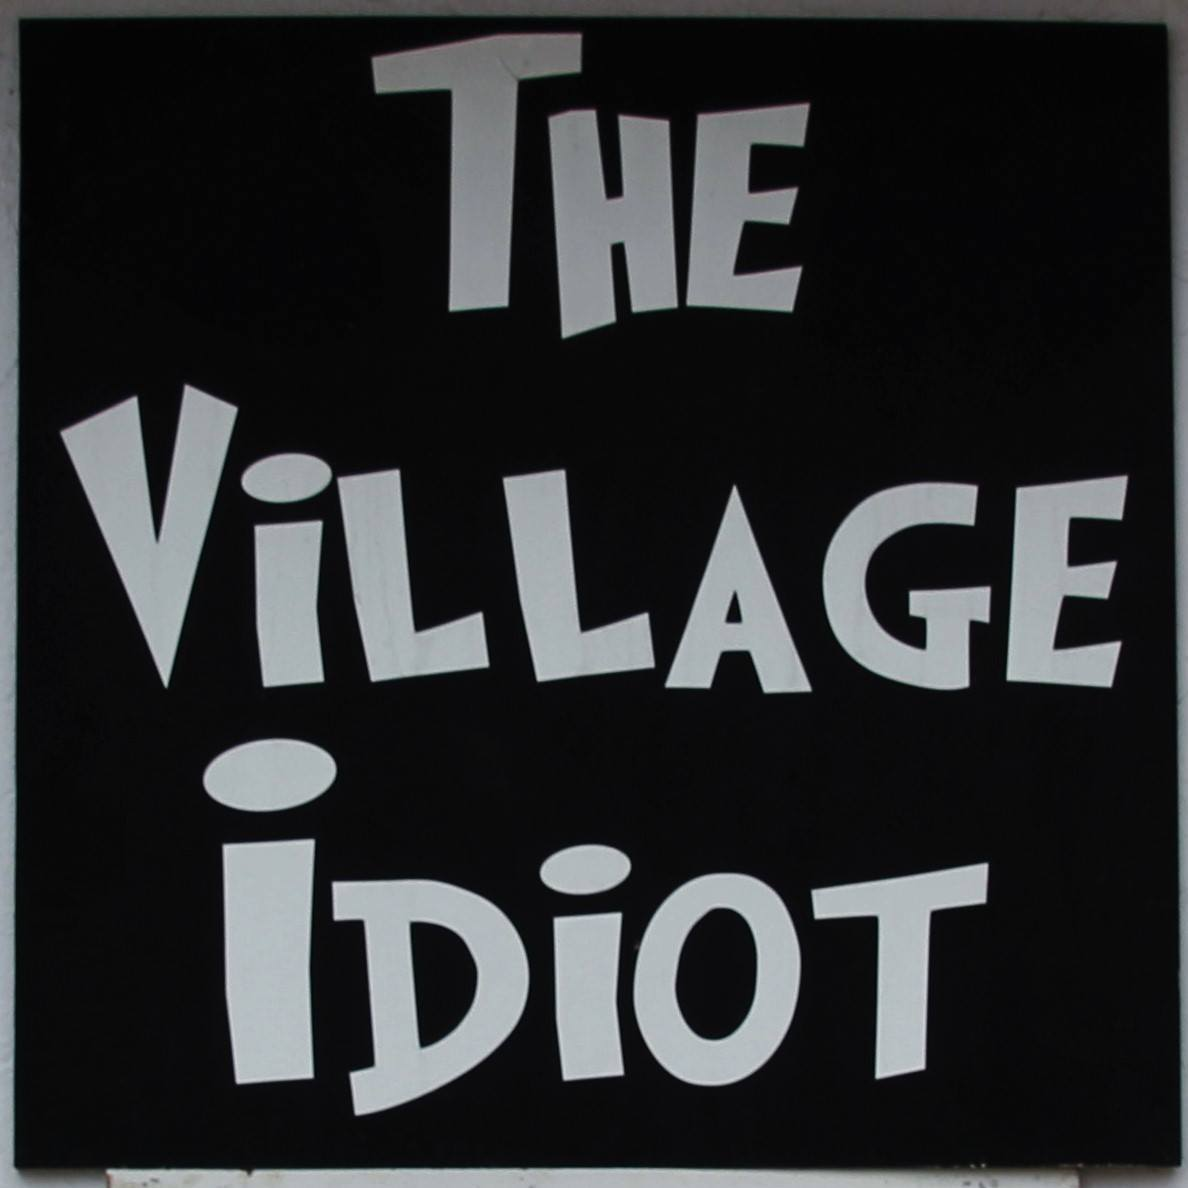 Free Comic Book Day 2019 List: The Village Idiot